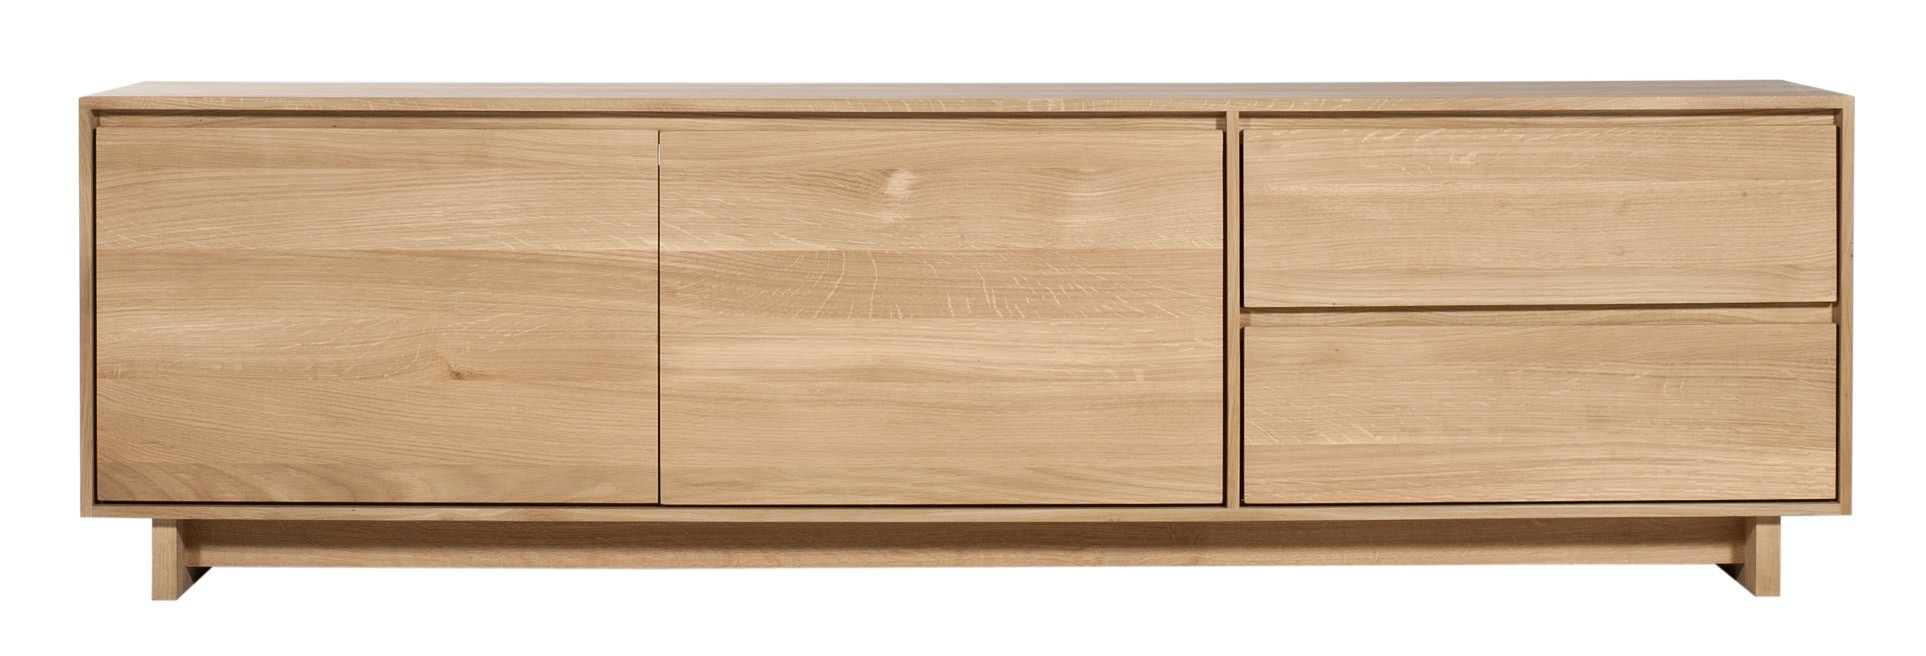 Meuble Tv Oak Wave D Ethnicraft 2 Porte 1 Porte Abattante 1  # Meuble Tv En Chene